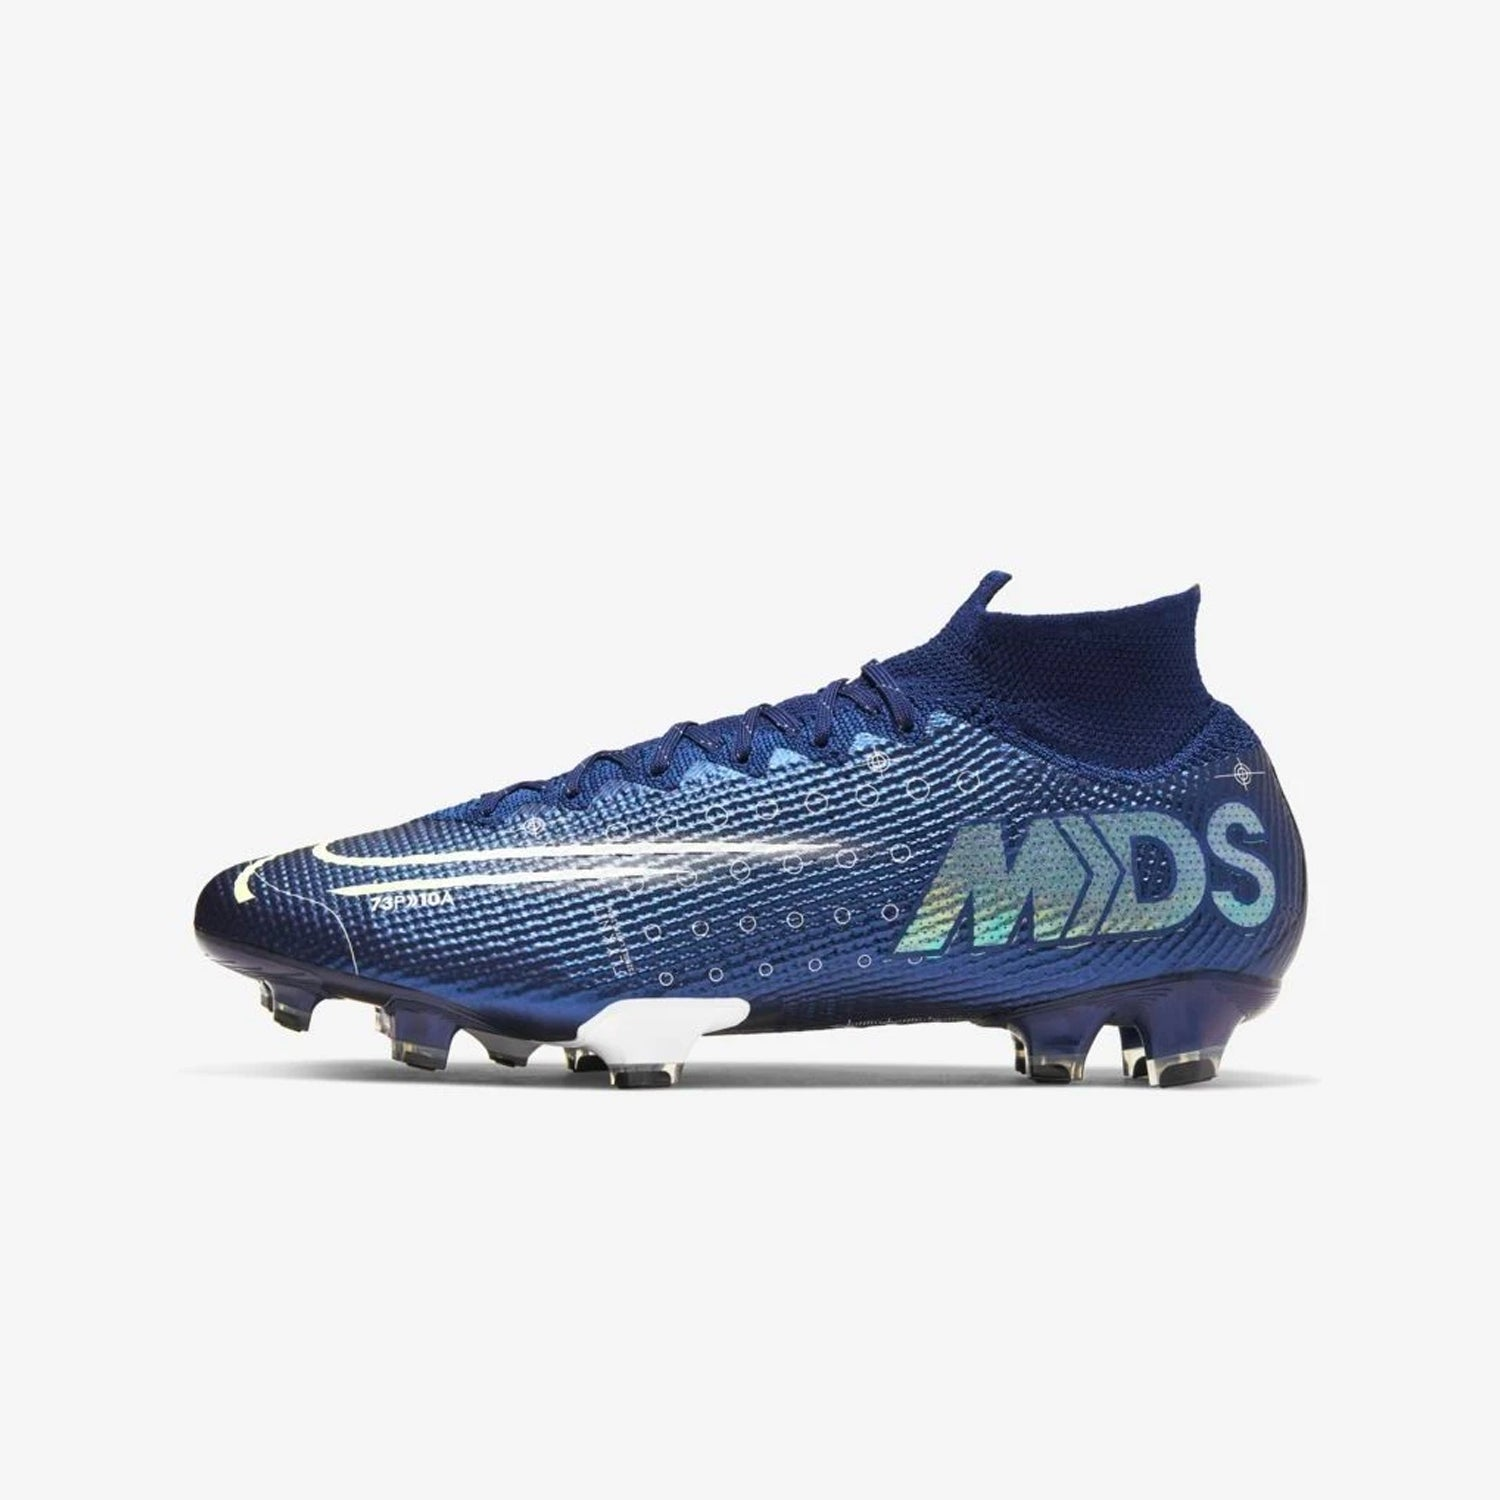 Mercurial Superfly 7 Elite MDS FG Soccer Cleats